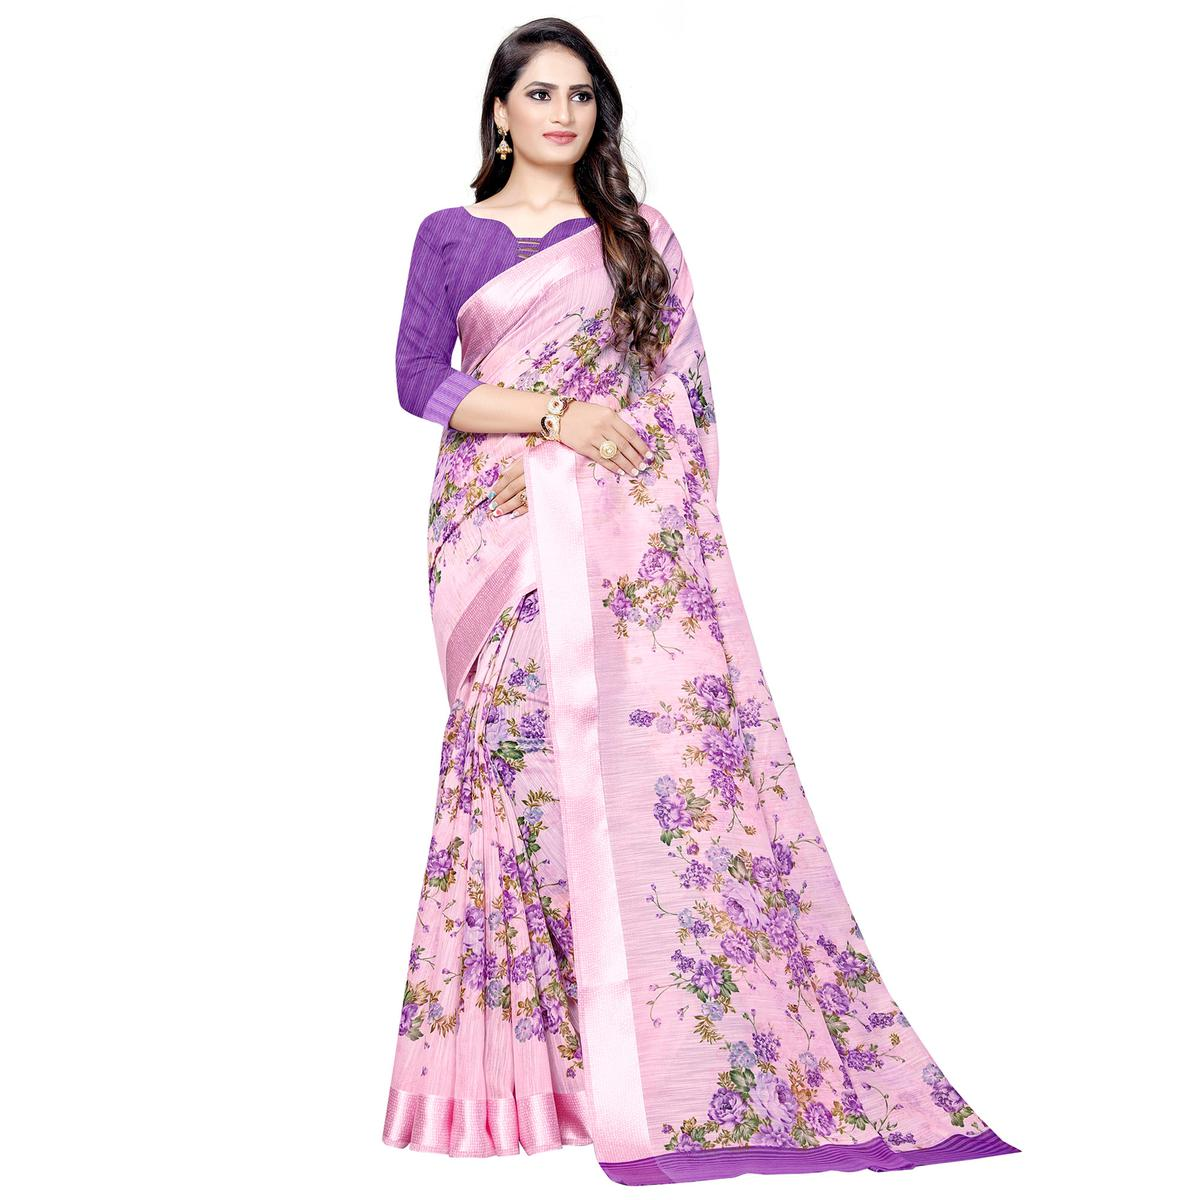 Exceptional Pink Colored Casual Floral Printed Linen Saree